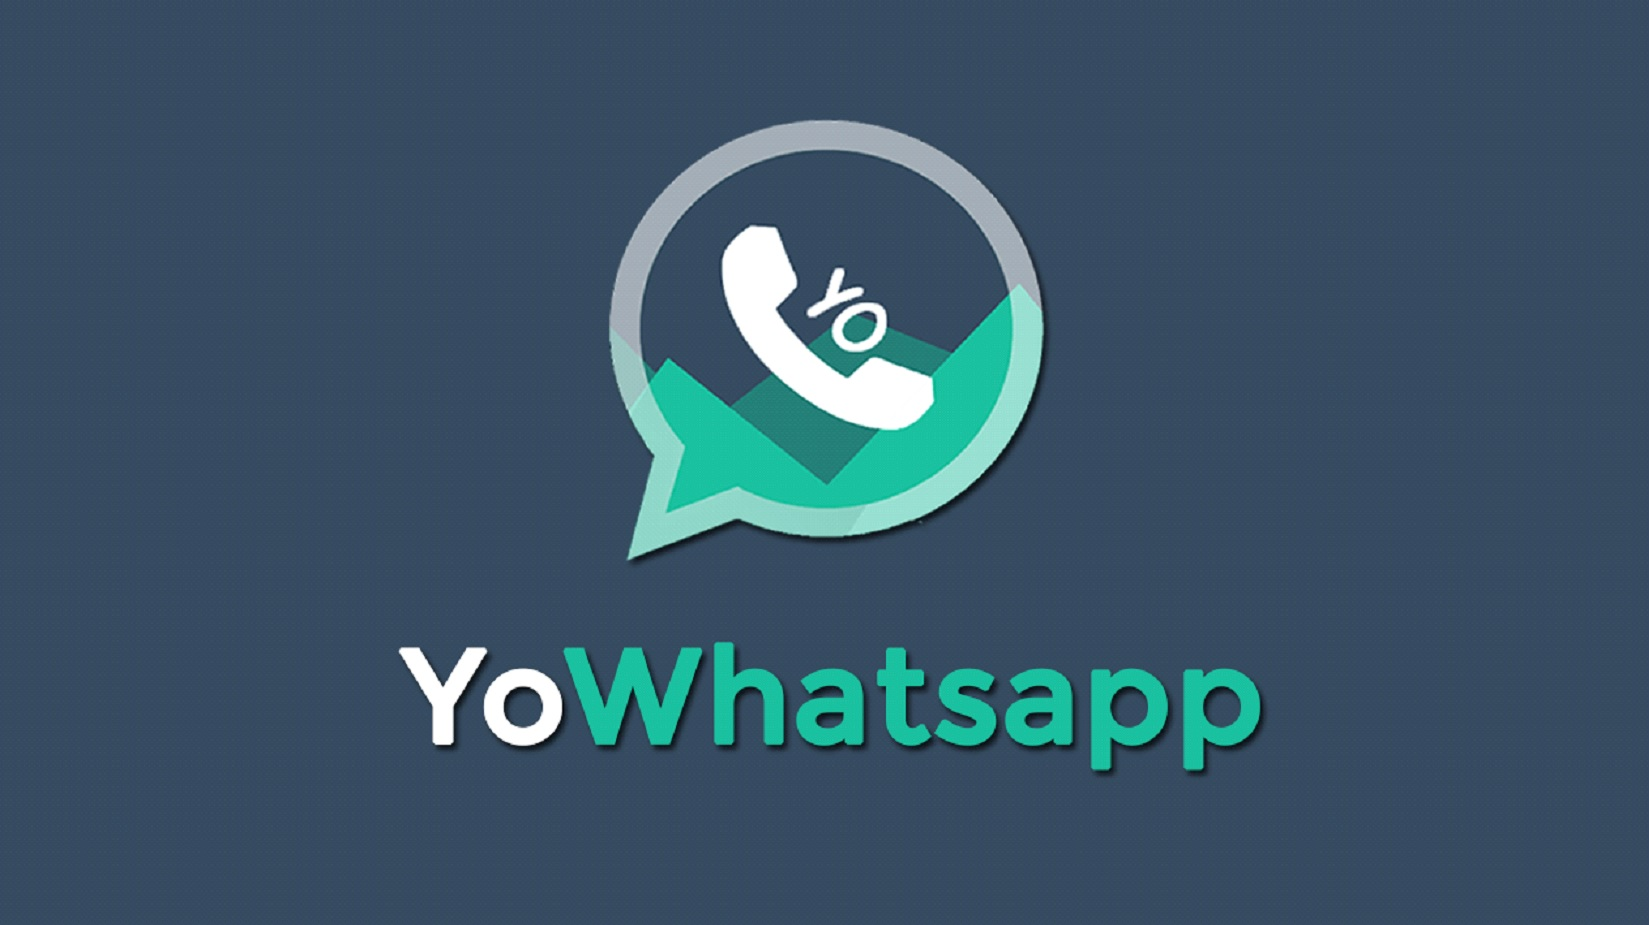 yowhatsapp download 2018 for pc